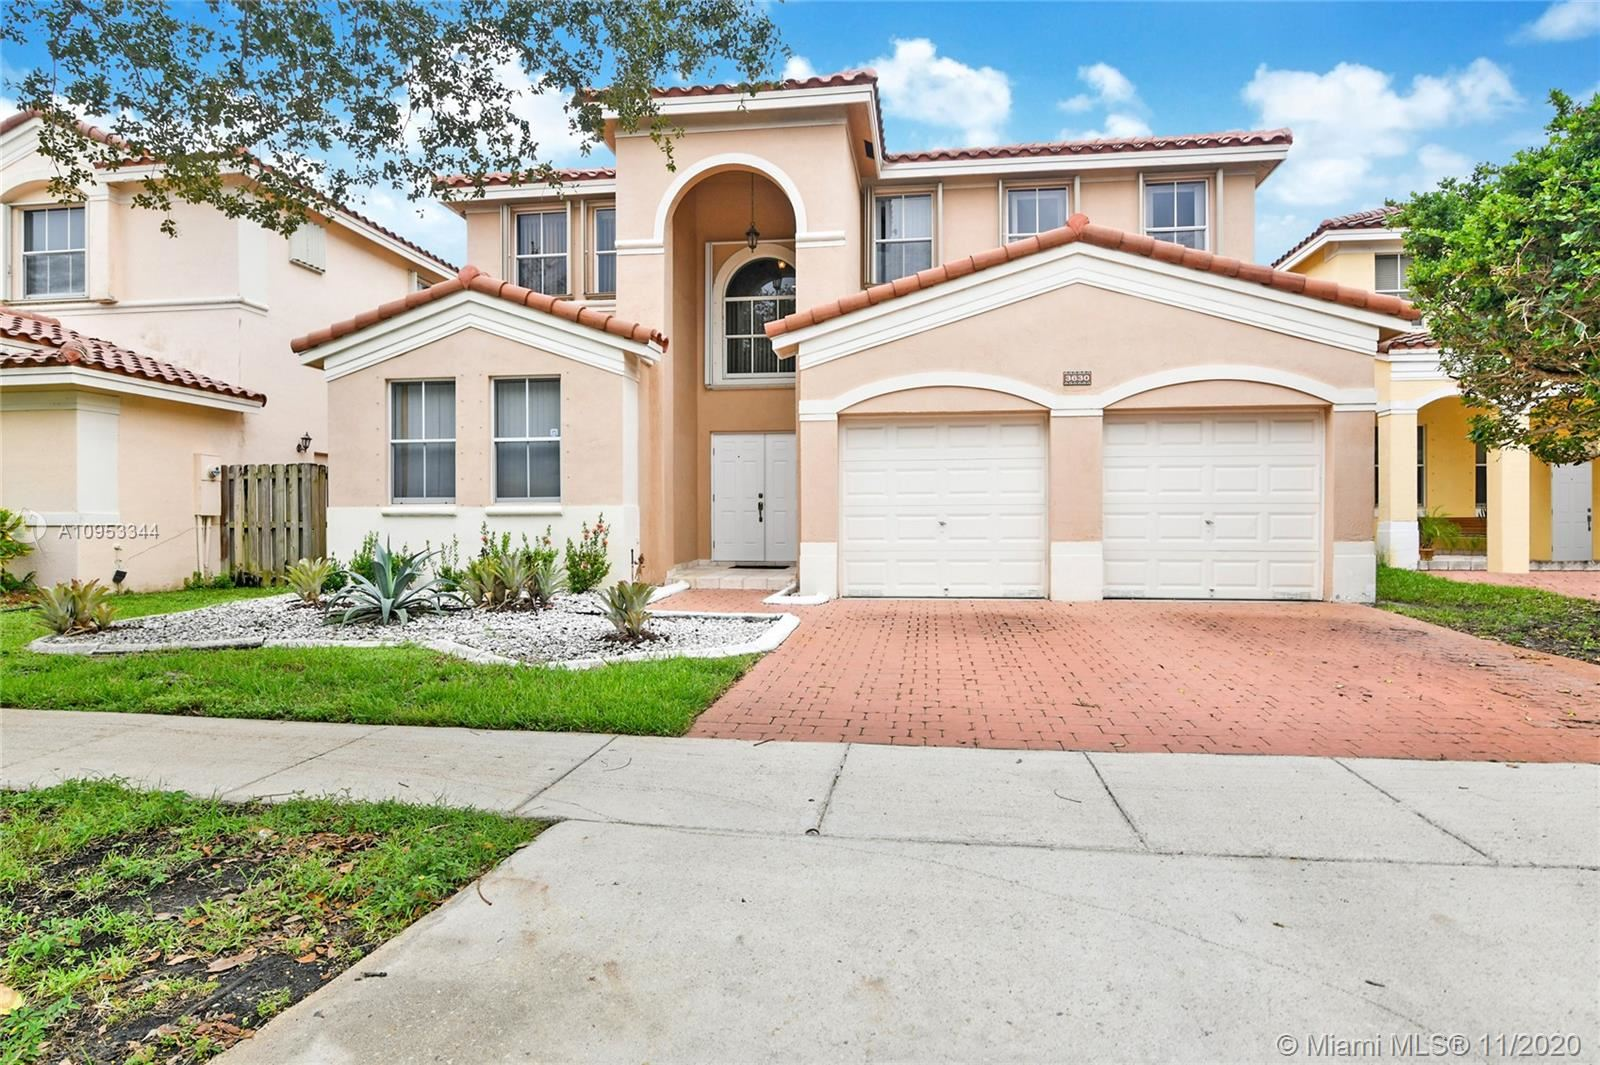 3630 SW 167th Ave, Miramar, FL 33027 - #: A10953344